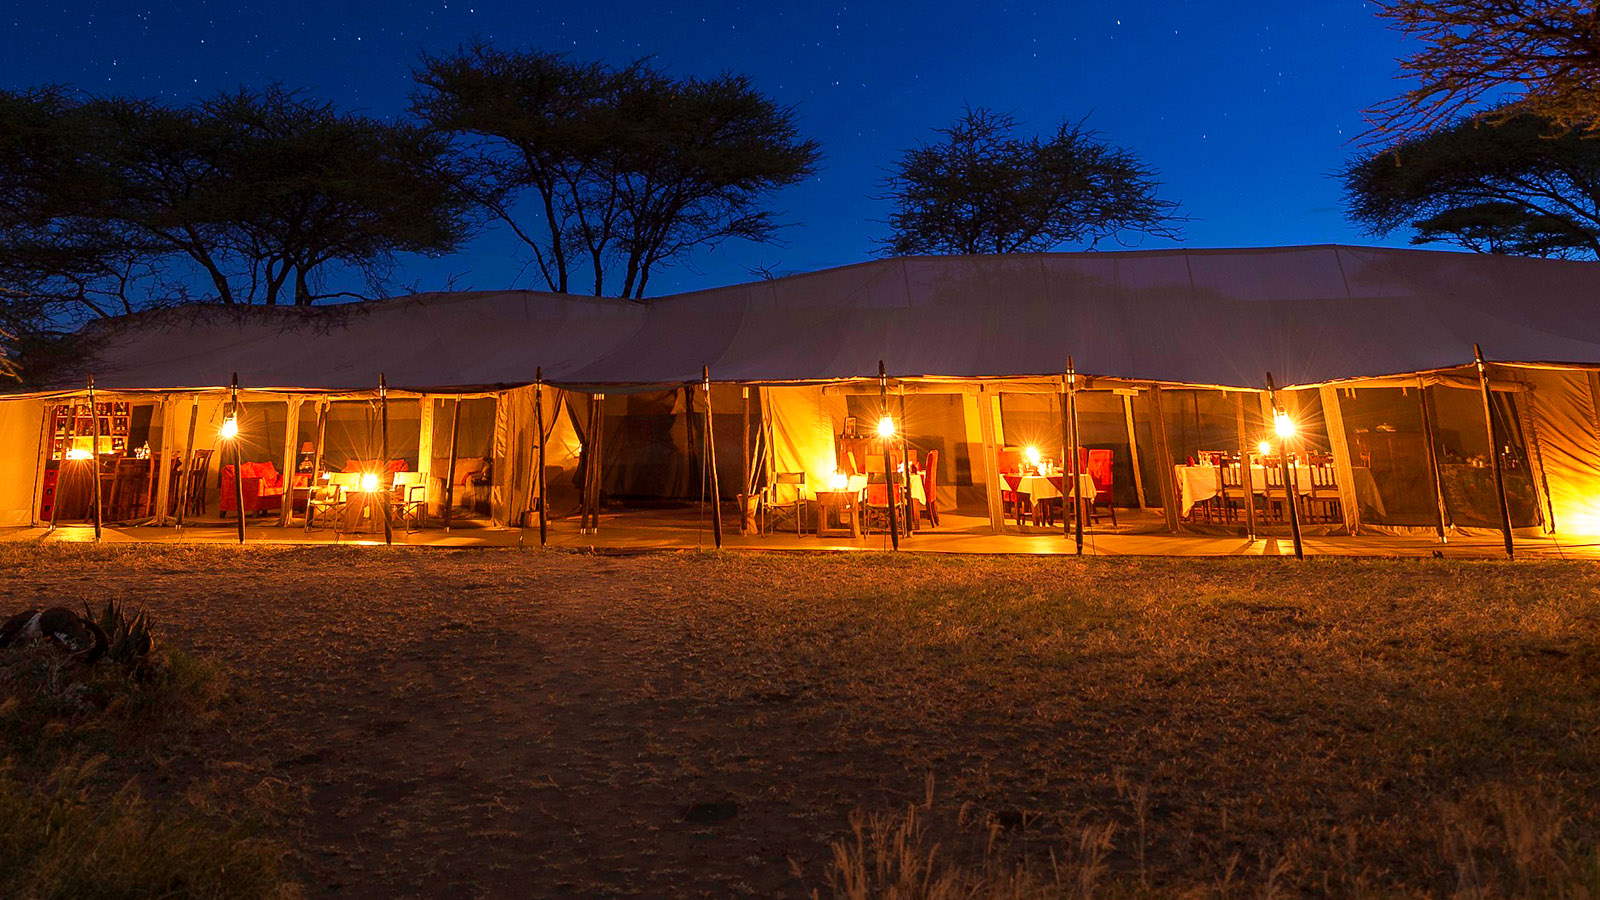 Situated near the famous Barafu and Sametu Kopjes, the camp boasts quiet seclusion, panoramic views of the wide open savannah plains and the Ngarenanyuki River meandering near the edge of camp.